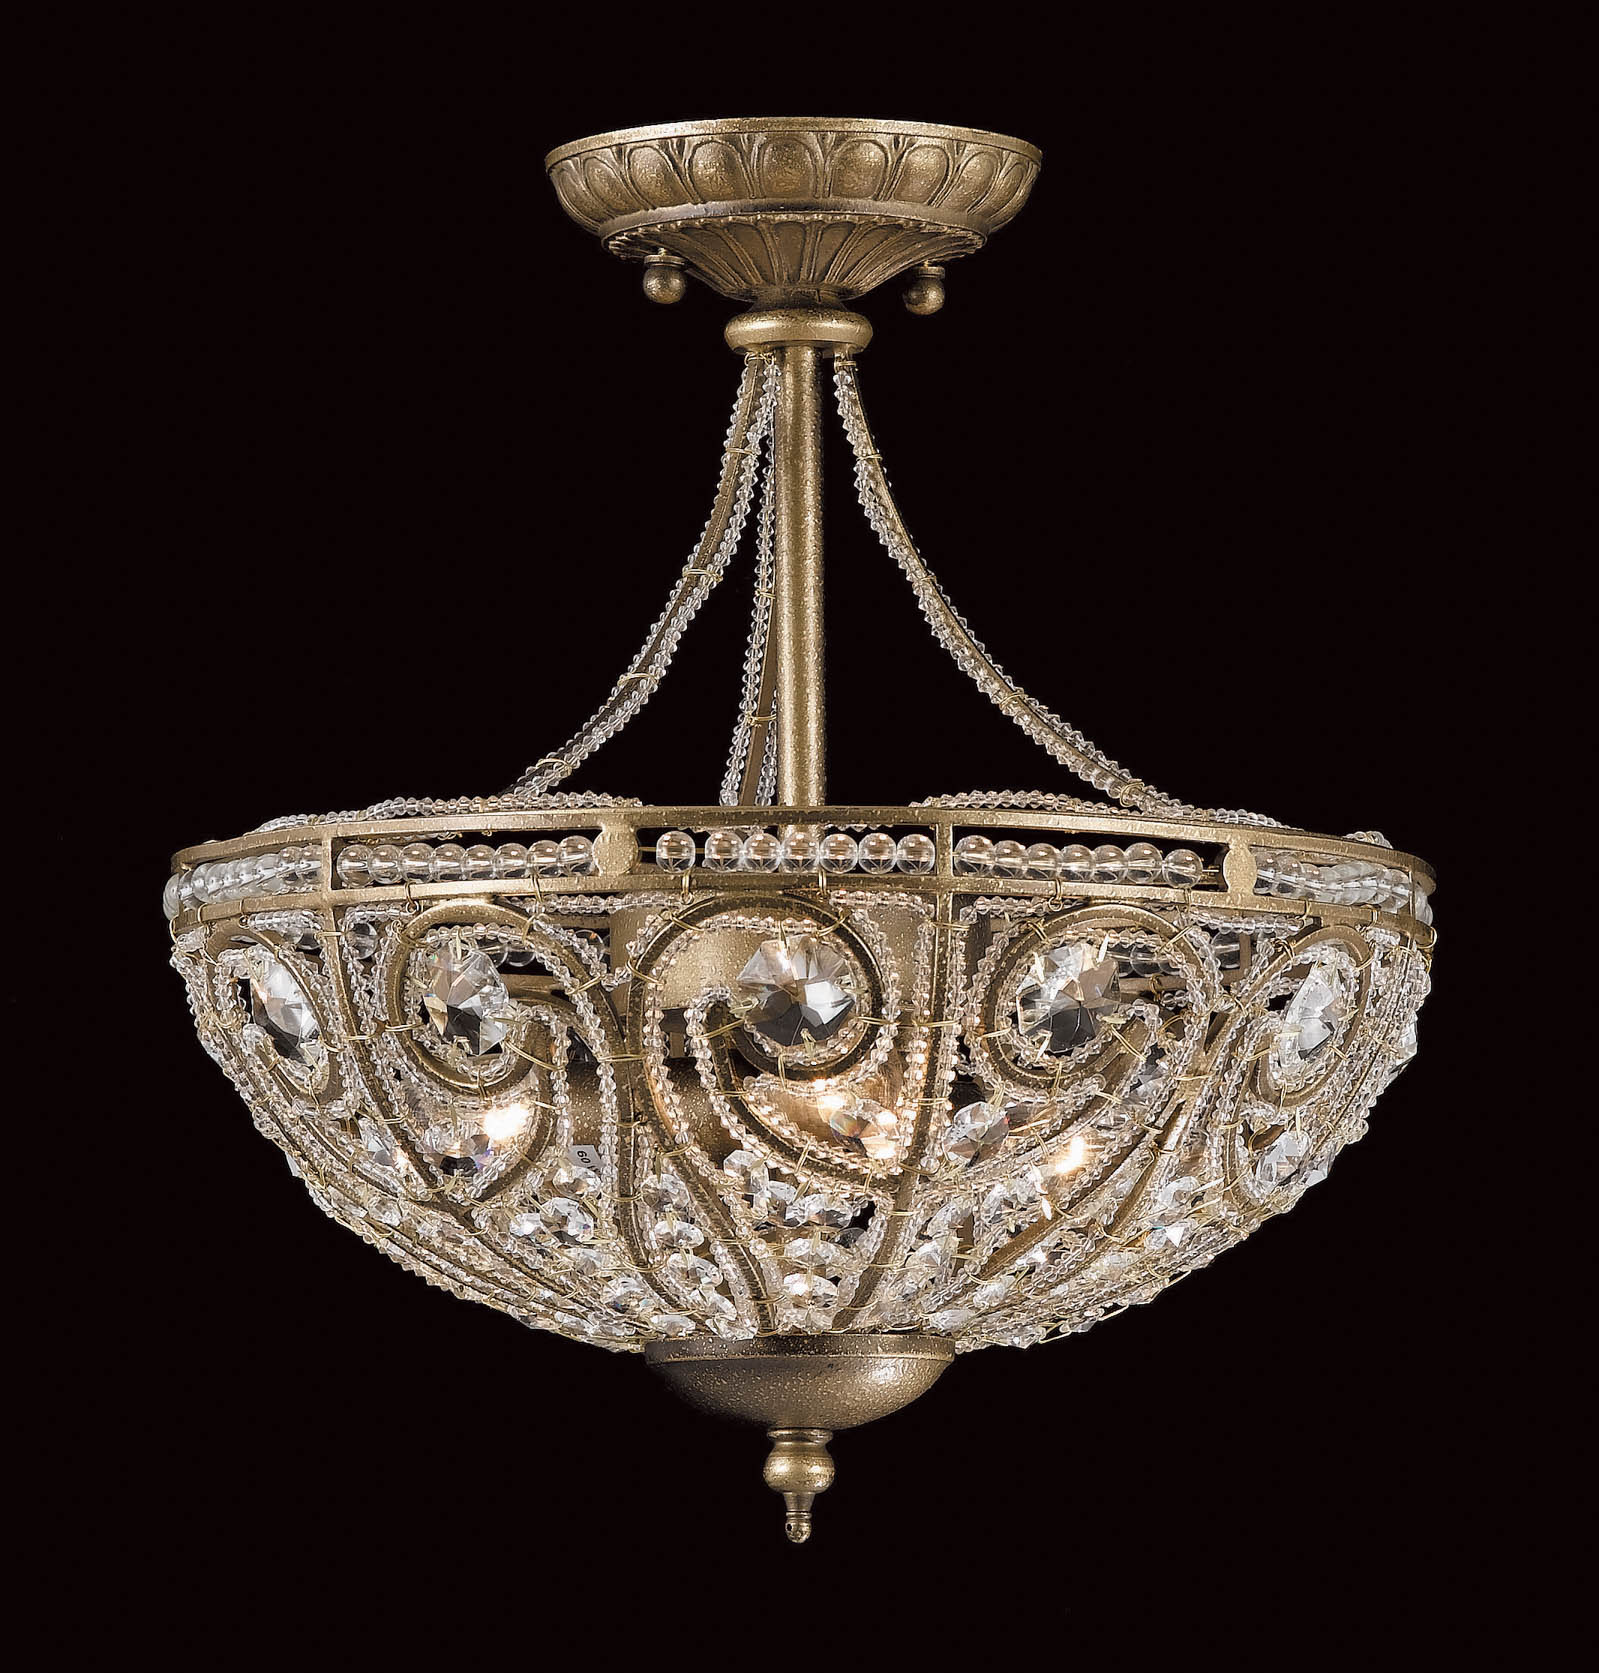 Impex CF98655/03/SF Elche 3 light Low Ceiling Fitting, Antique Brass